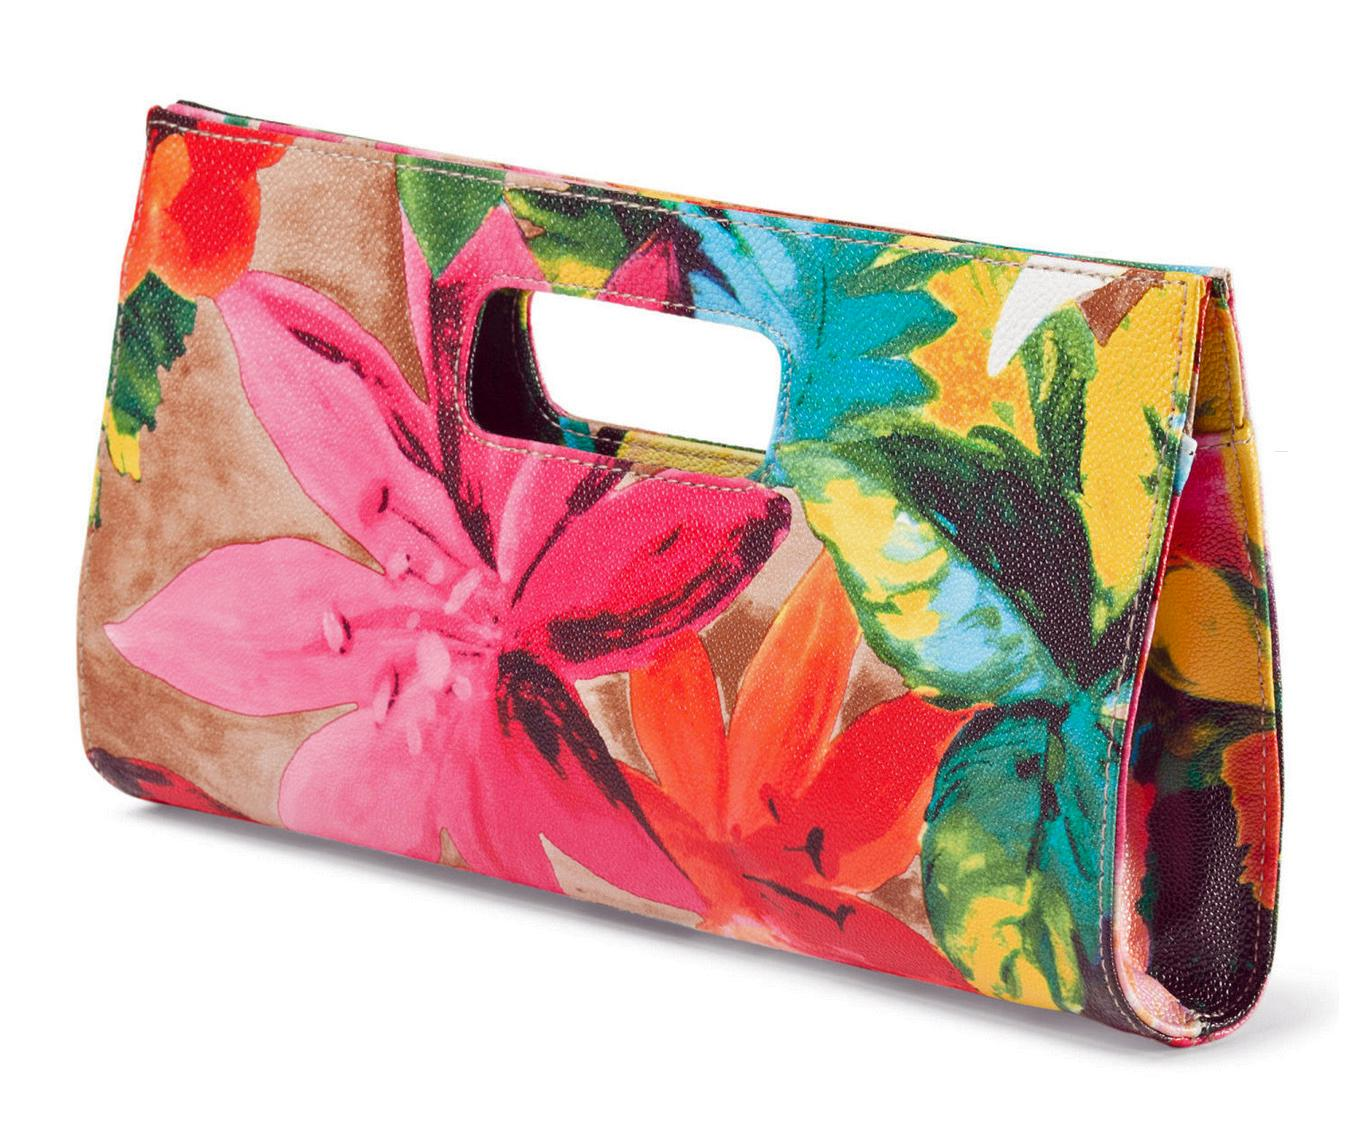 Chateau Tropical Floral Print Vegan Leather Clutch Bag